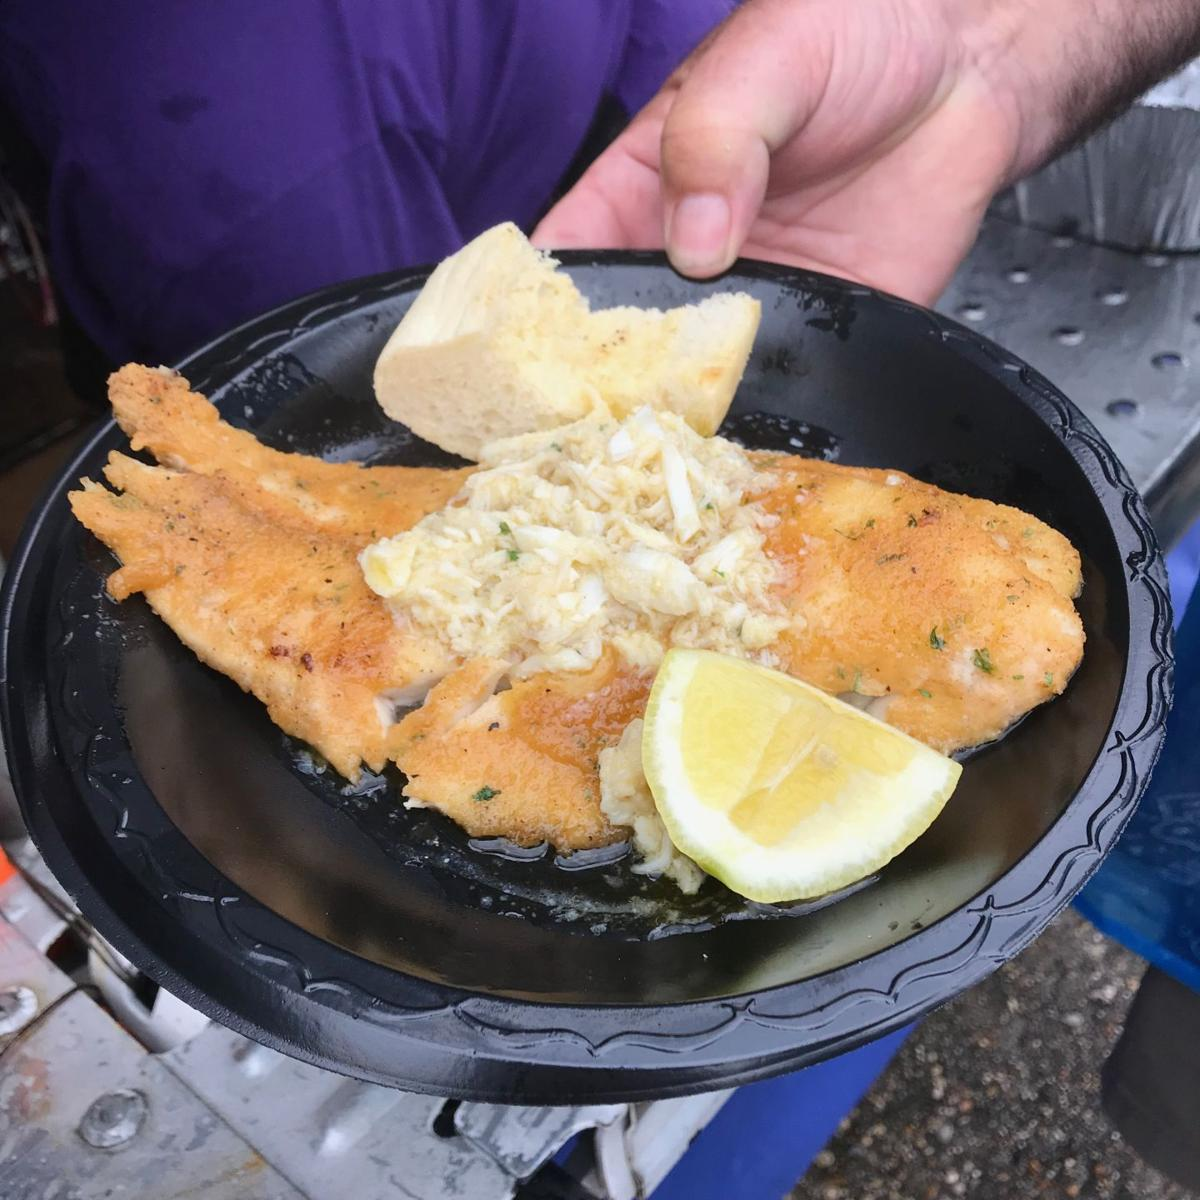 Best food at New Orleans Jazz Fest: Updated with new 2019 dishes